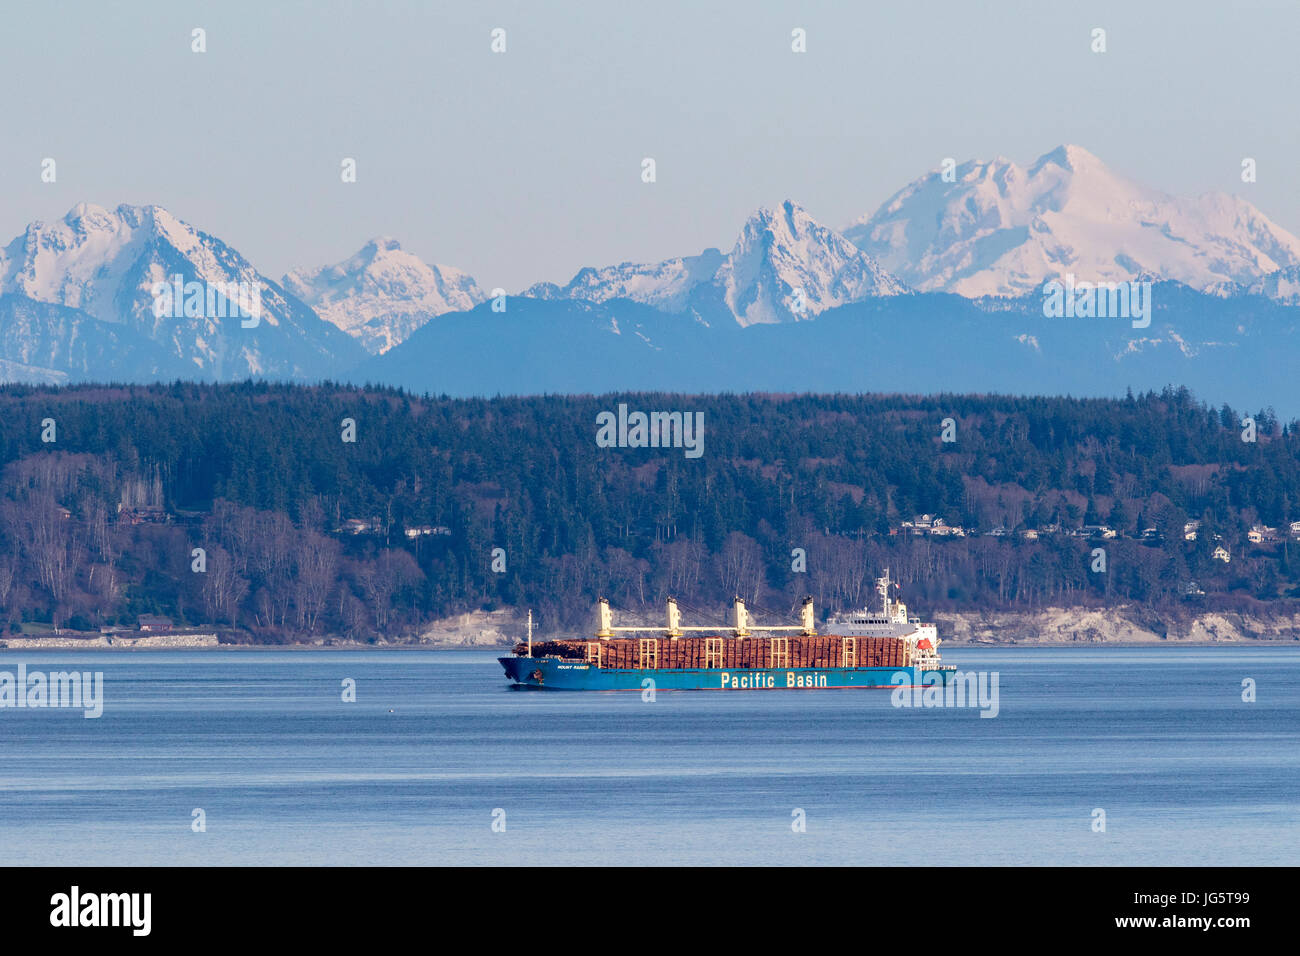 Log ship used for logging passes through Puget Sound, Washington with Cascade Mountains in background. - Stock Image